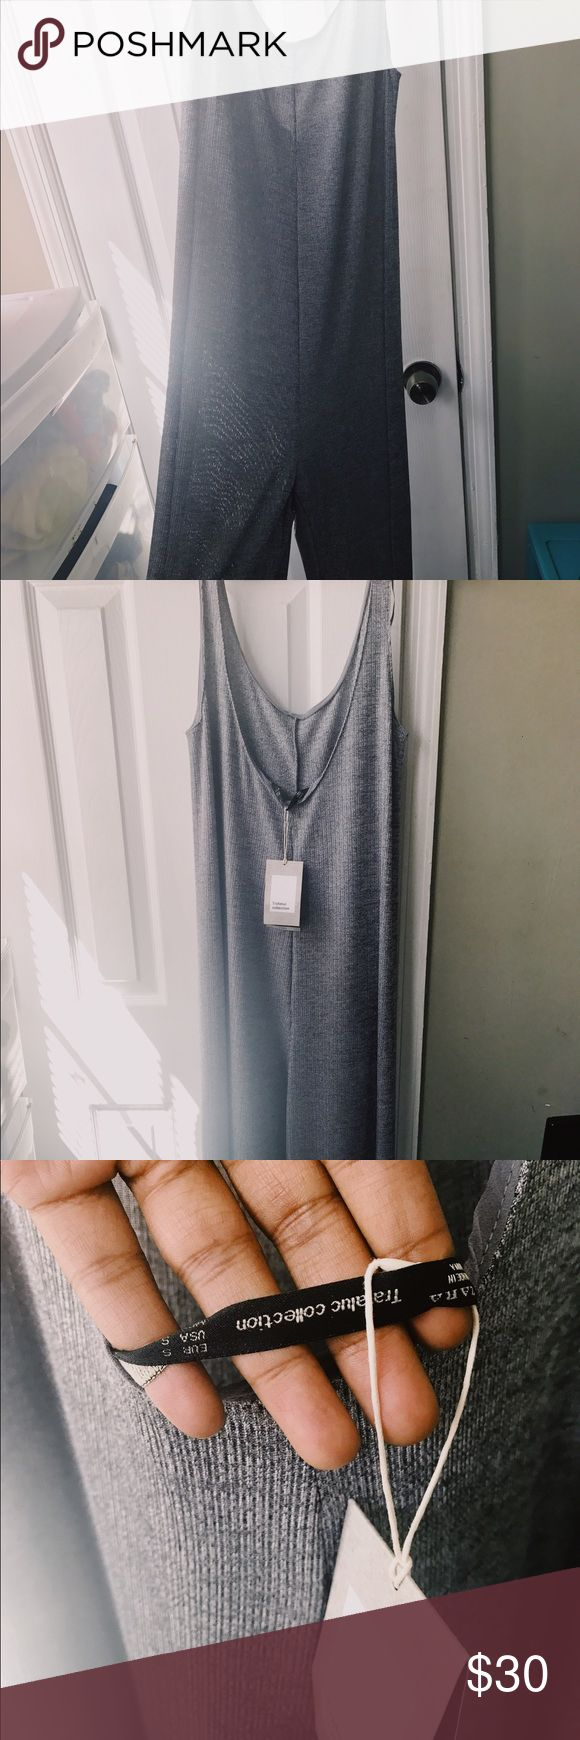 Zara Long Wide-legged Silver Jumpsuit ✨Sale✨ Let me just say, this piece is amazing! 😍😩 I bought it in San Diego for a dinner but never got a chance to wear it. Still has tags. Fits loosely and would look great with a waist belt and heels. To be honest, I'm still indecisive about selling. Silver. Thin material. Short slits up both legs. Zara Pants Jumpsuits & Rompers